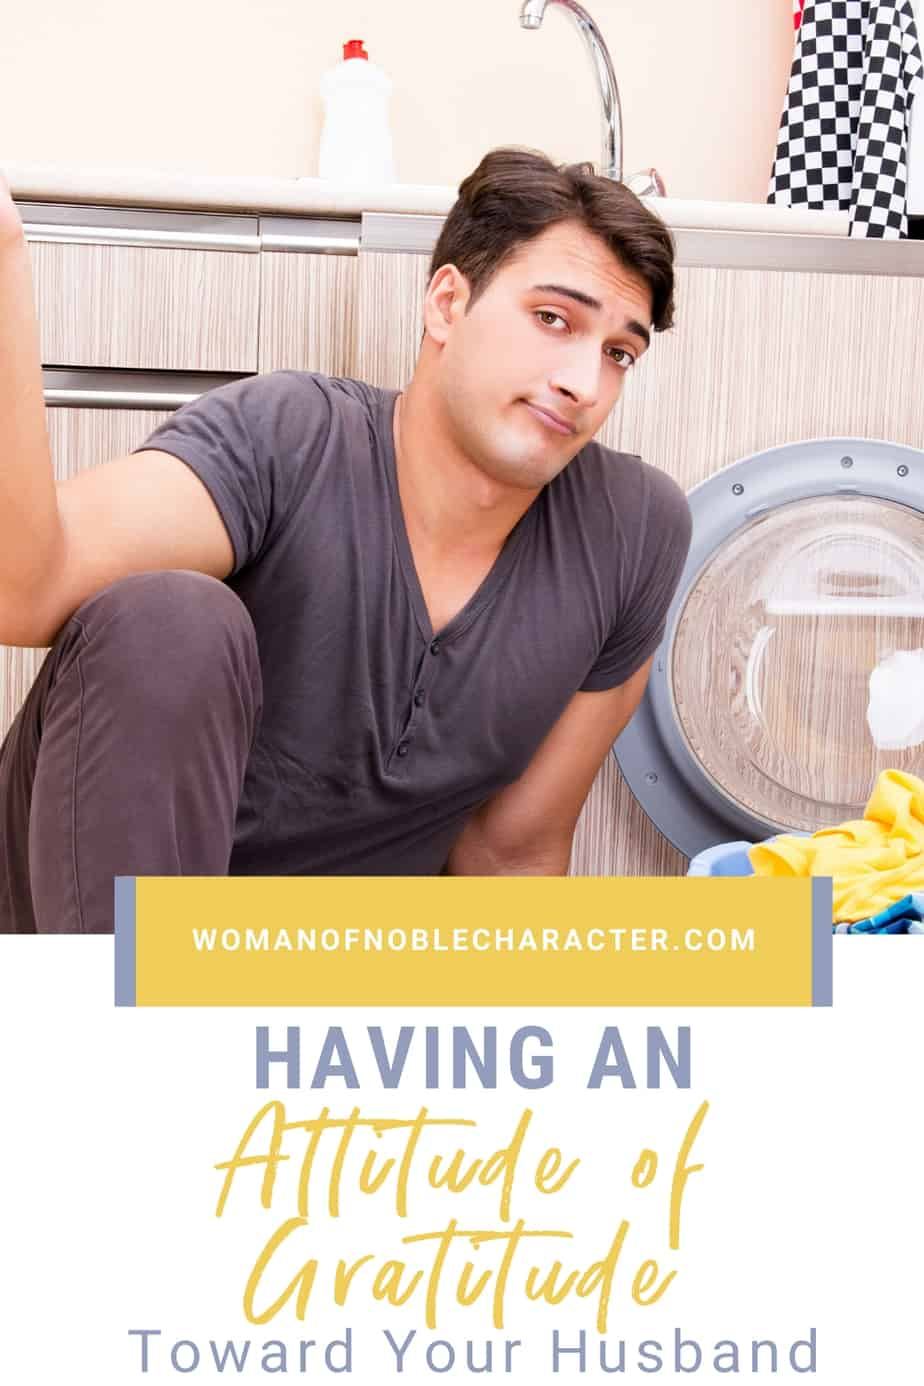 An image of a man sitting in front of a clothes dryer with a confused look on his face and shrugging his shoulder with a text overlay that says Having an Attitude of Gratitude Toward Your Husband